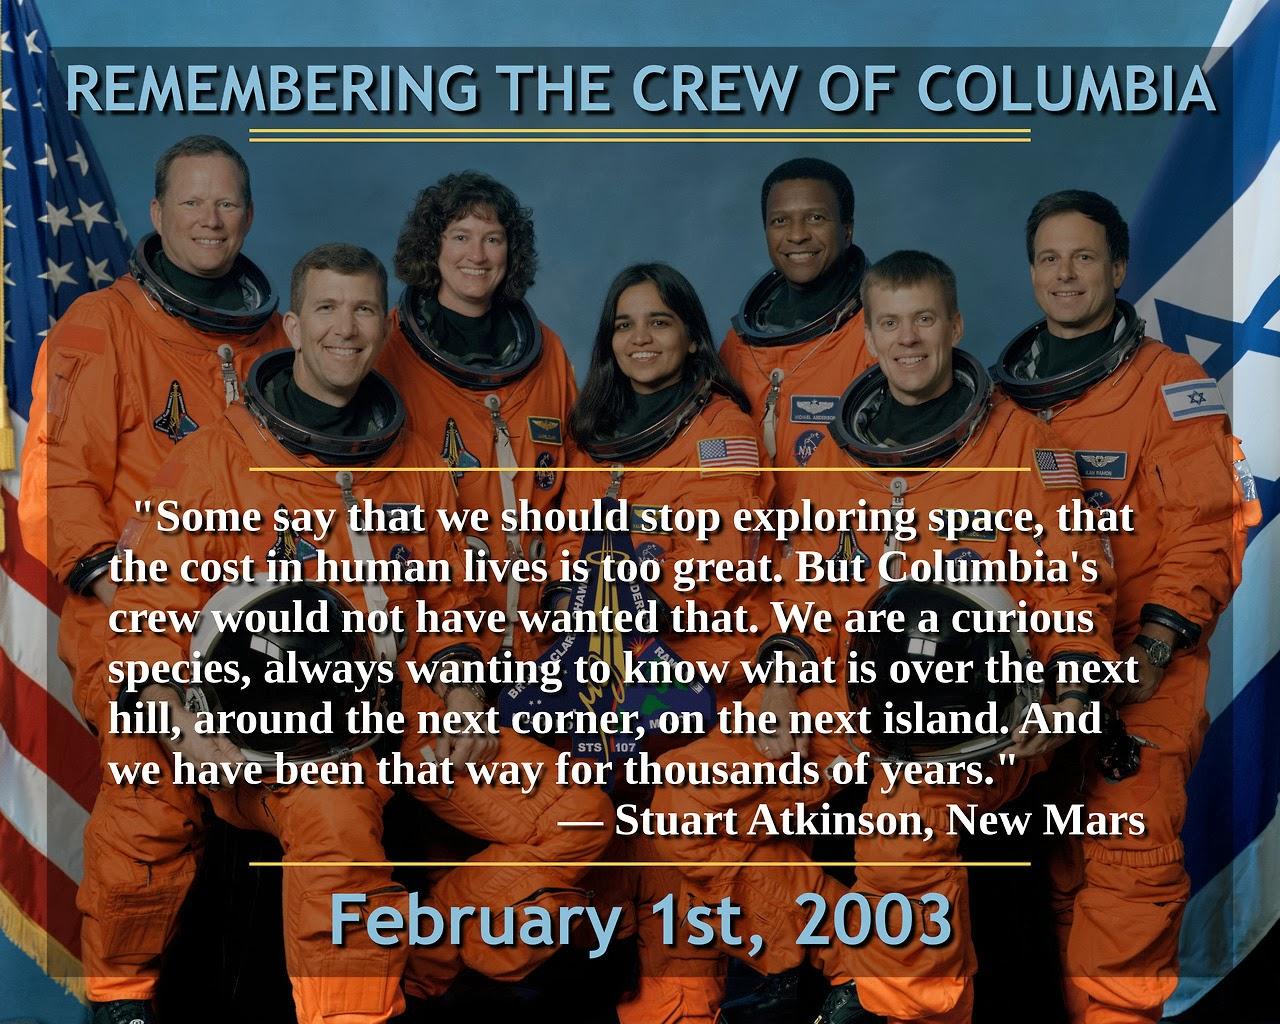 I Like The Cut Of His Jib !!: Remembering the crew of ...